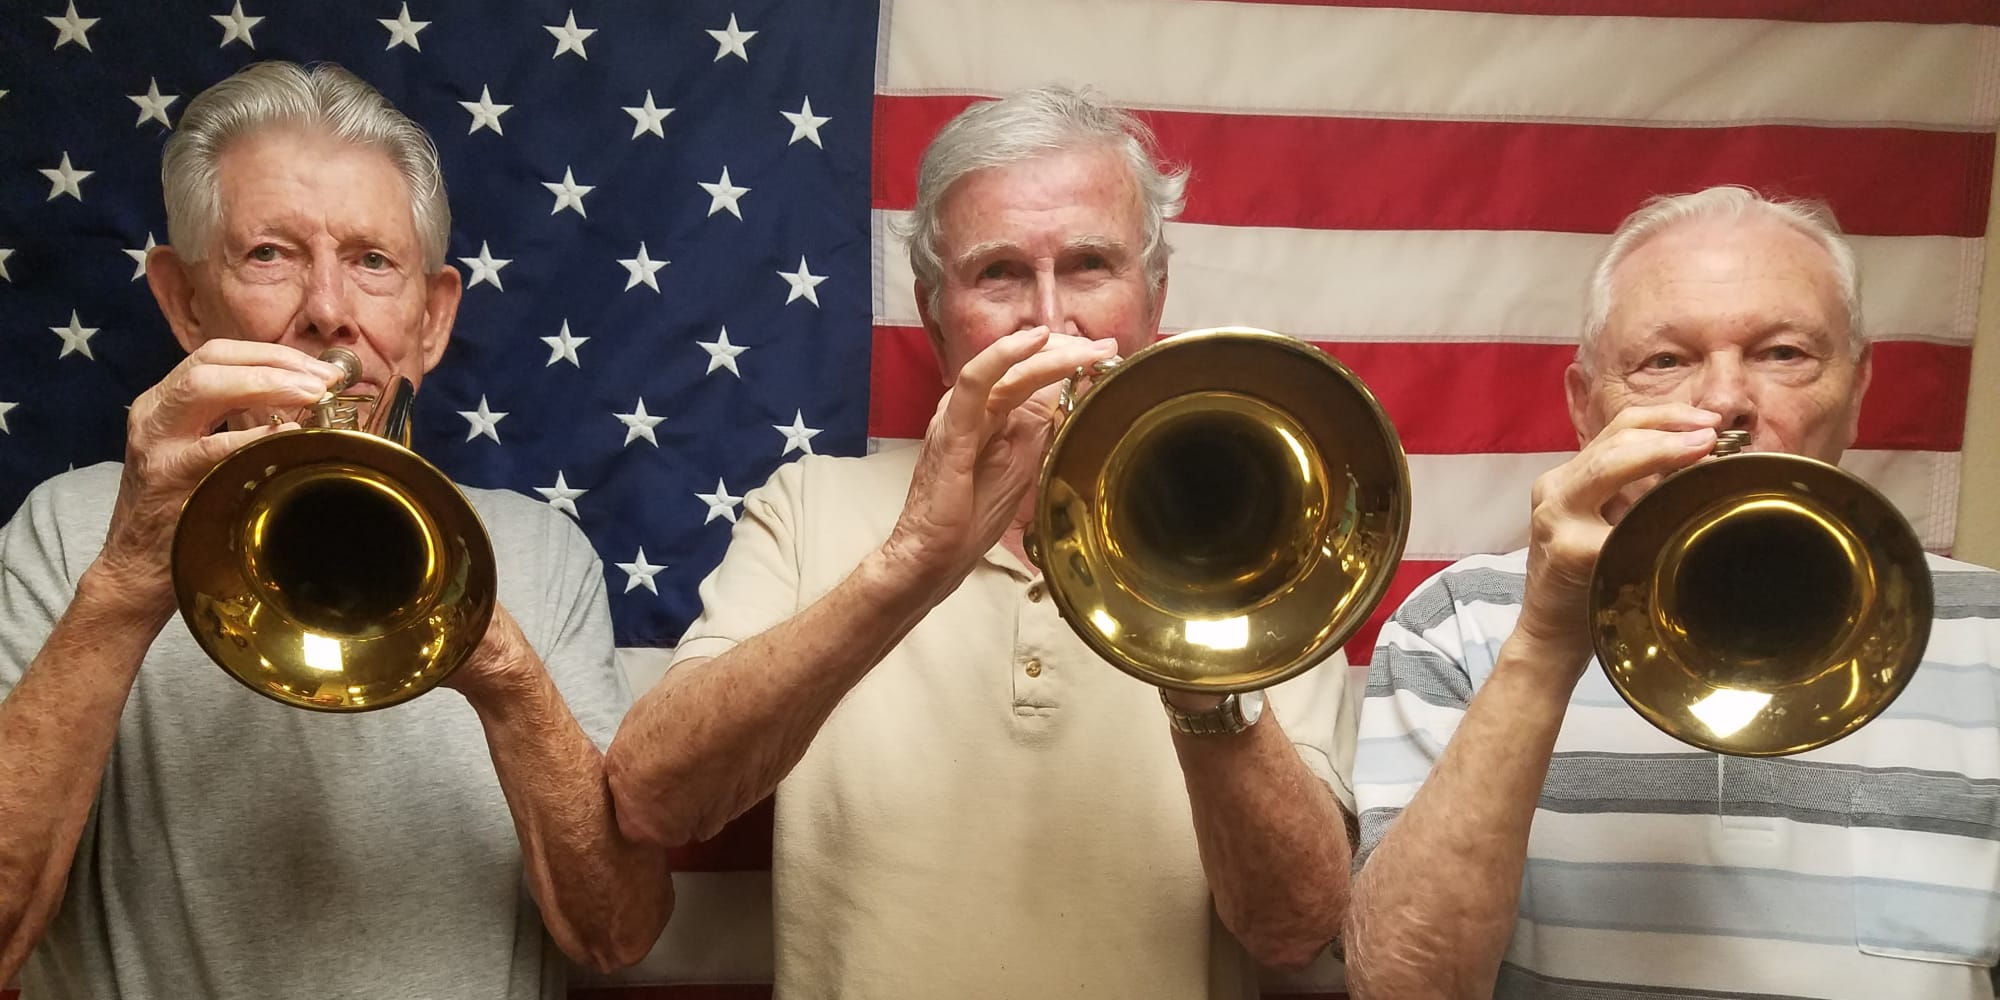 Three residents playing trumpets at Chesterfield Heights in Midlothian, Virginia